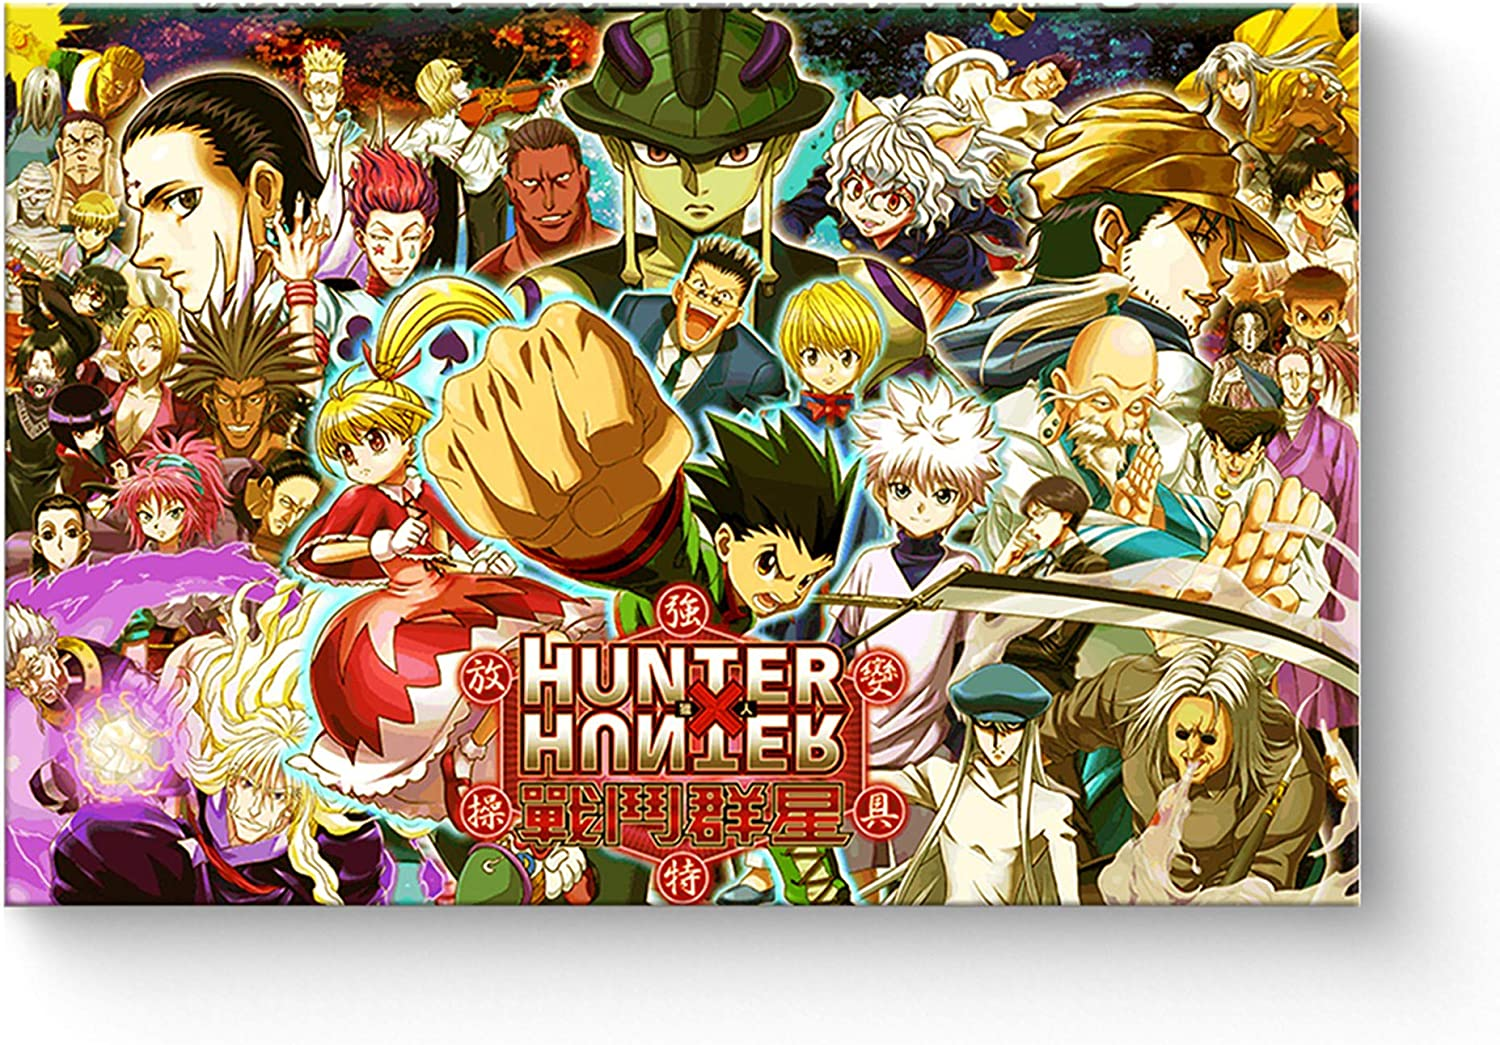 "QIXIANG Hunter X Hunter Anime Poster and Prints Canvas Wall Art Gifts Decor Wall Art Pictures Canvas HD Printed Anime Painting Framed Poster Modern Home Decor Room (16"" x24, Artwork-03)"